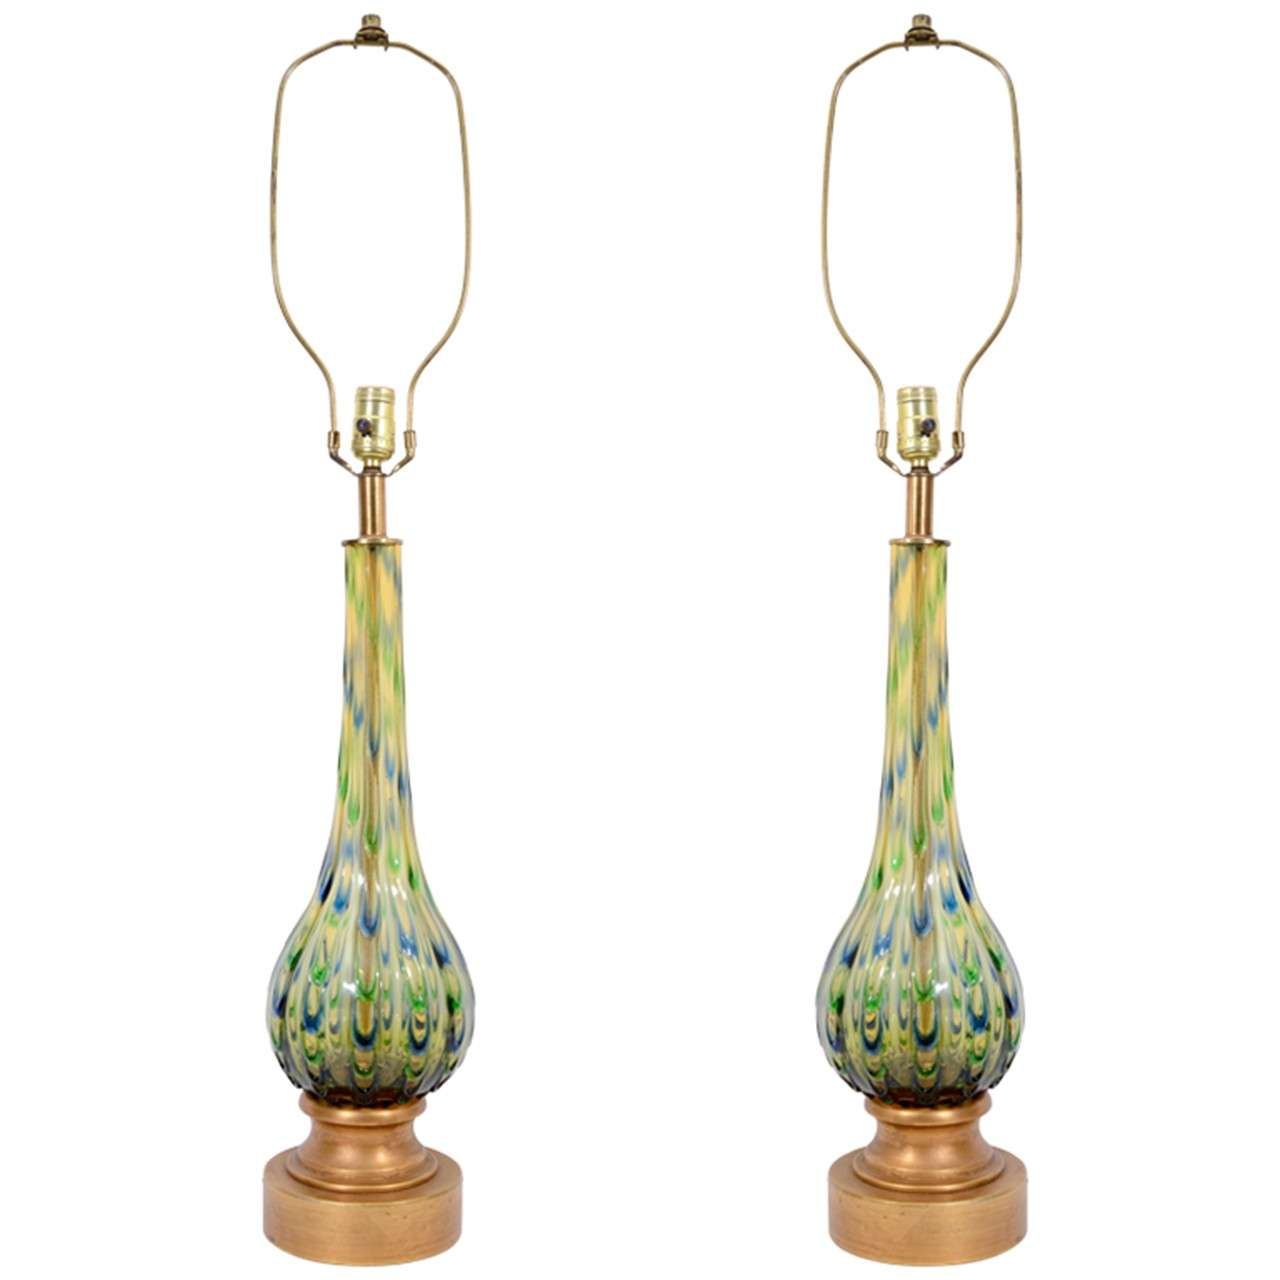 Pair of Mid Century Seguso Murano Glass Lamps in Green, Blue and Amber